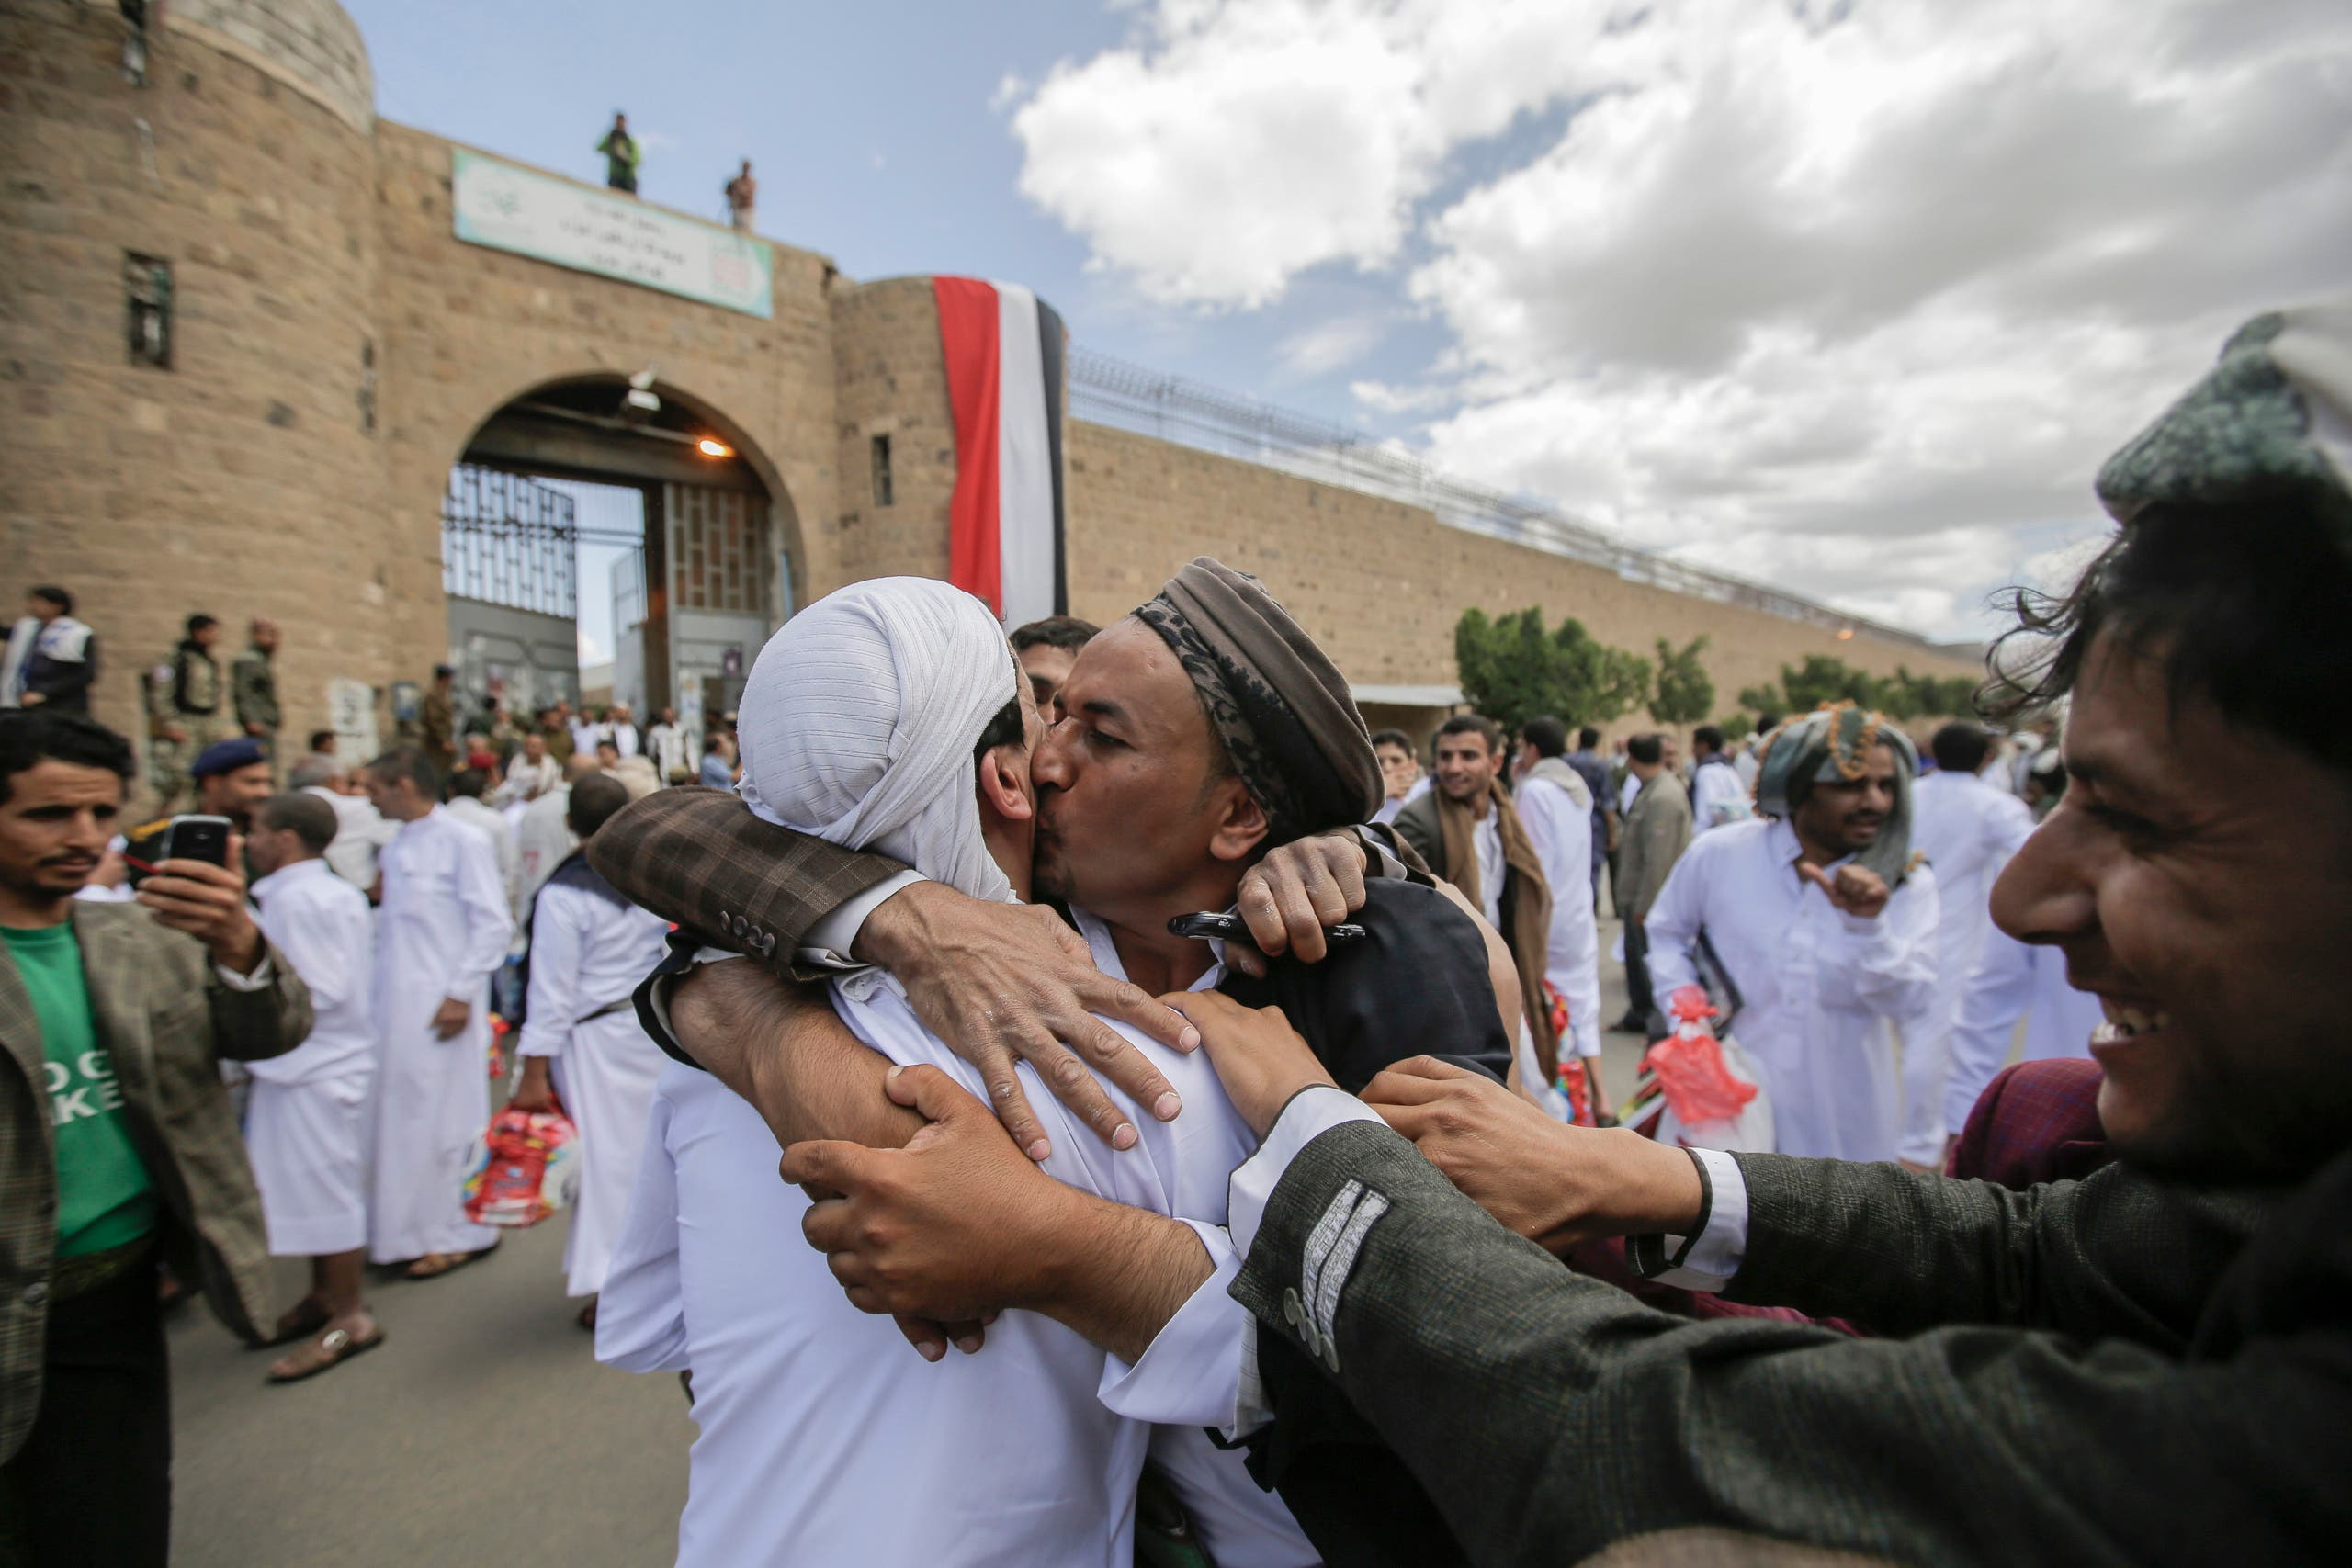 A Yemeni detainee is greeted by his relative and friends after his release from a prison controlled by Houthi rebels, in Sanaa, Yemen on Sept. 30, 2019. (AP)